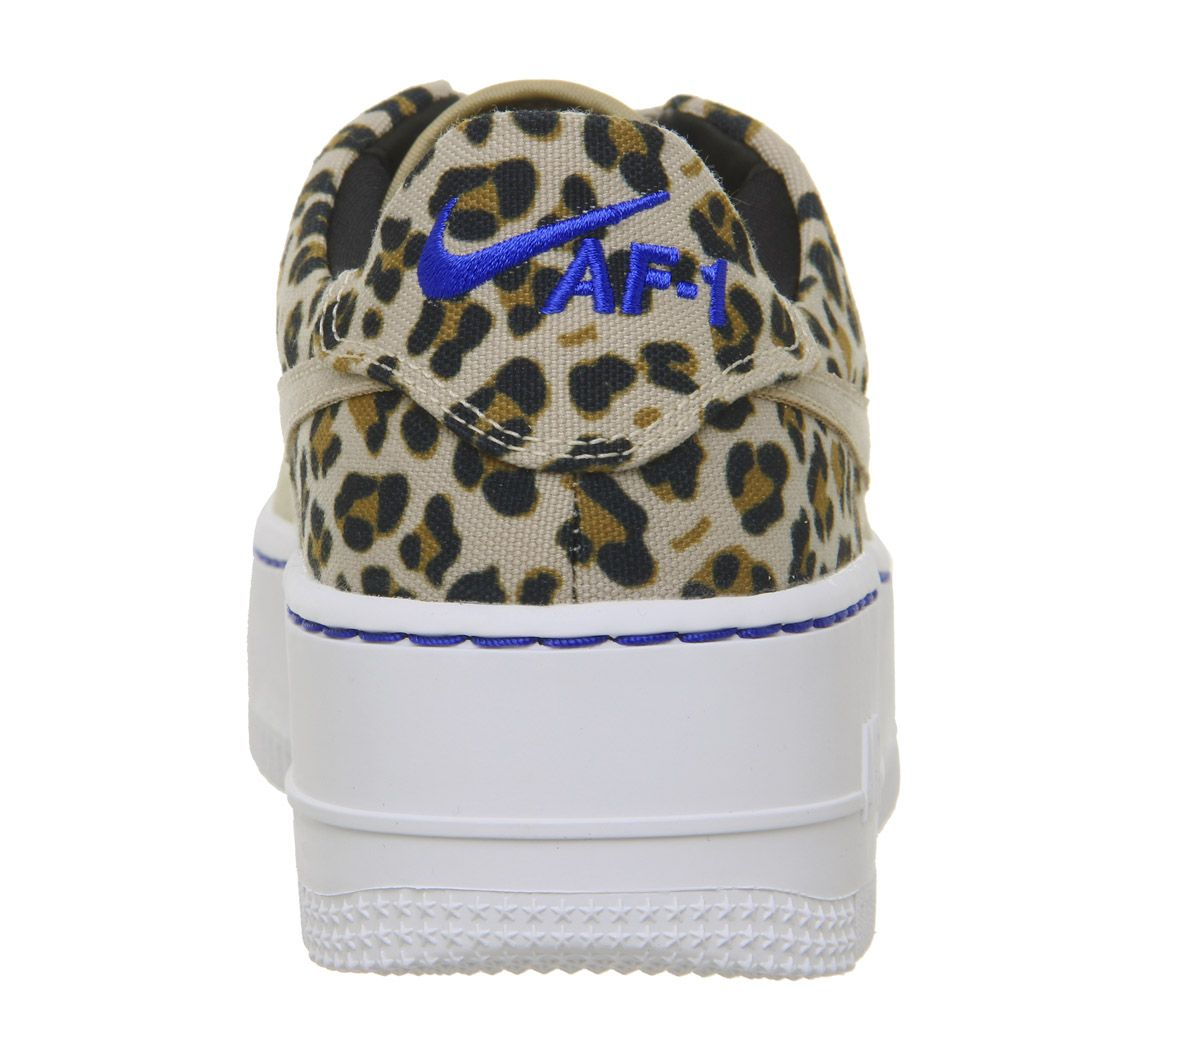 f045e19f35 Nike Air Force 1 Sage Trainers Desert Ore Wheat Leopard - Hers trainers